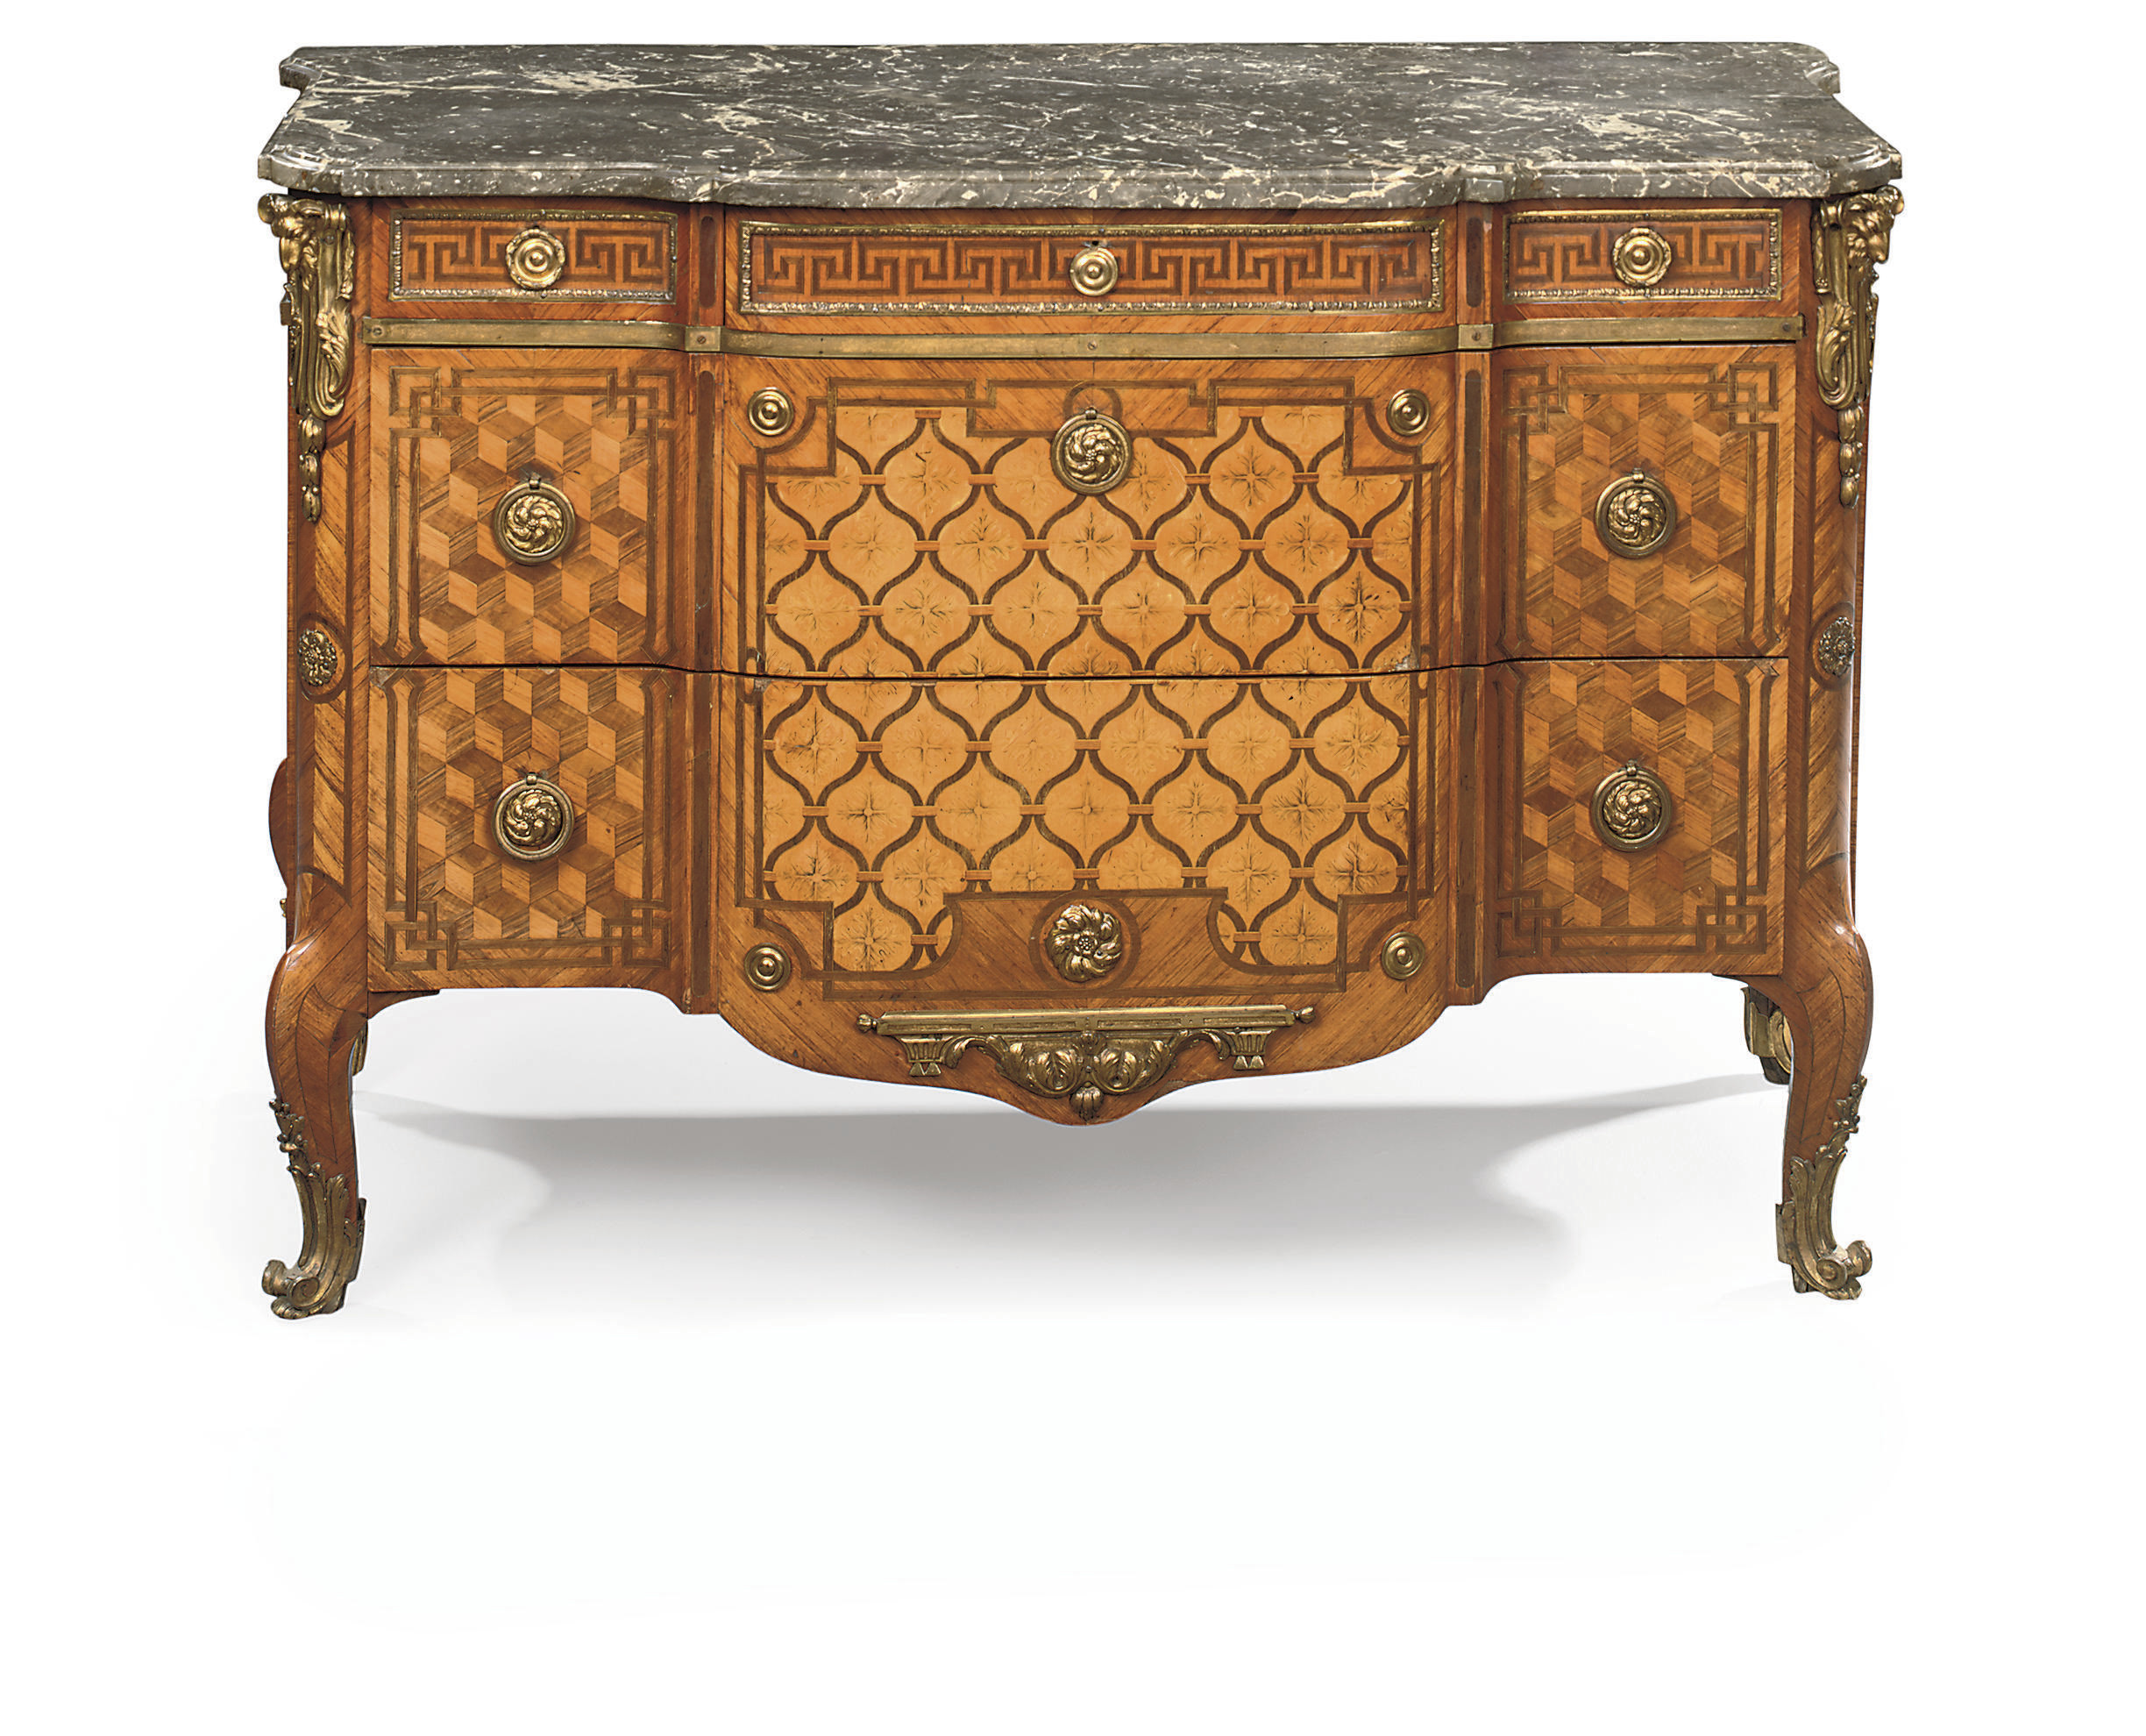 A LATE LOUIS XV OMOLU-MOUNTED TULIPWOOD, ROSEWOOD, AMARANTH, MARQUETRY AND PARQUETRY COMMODE